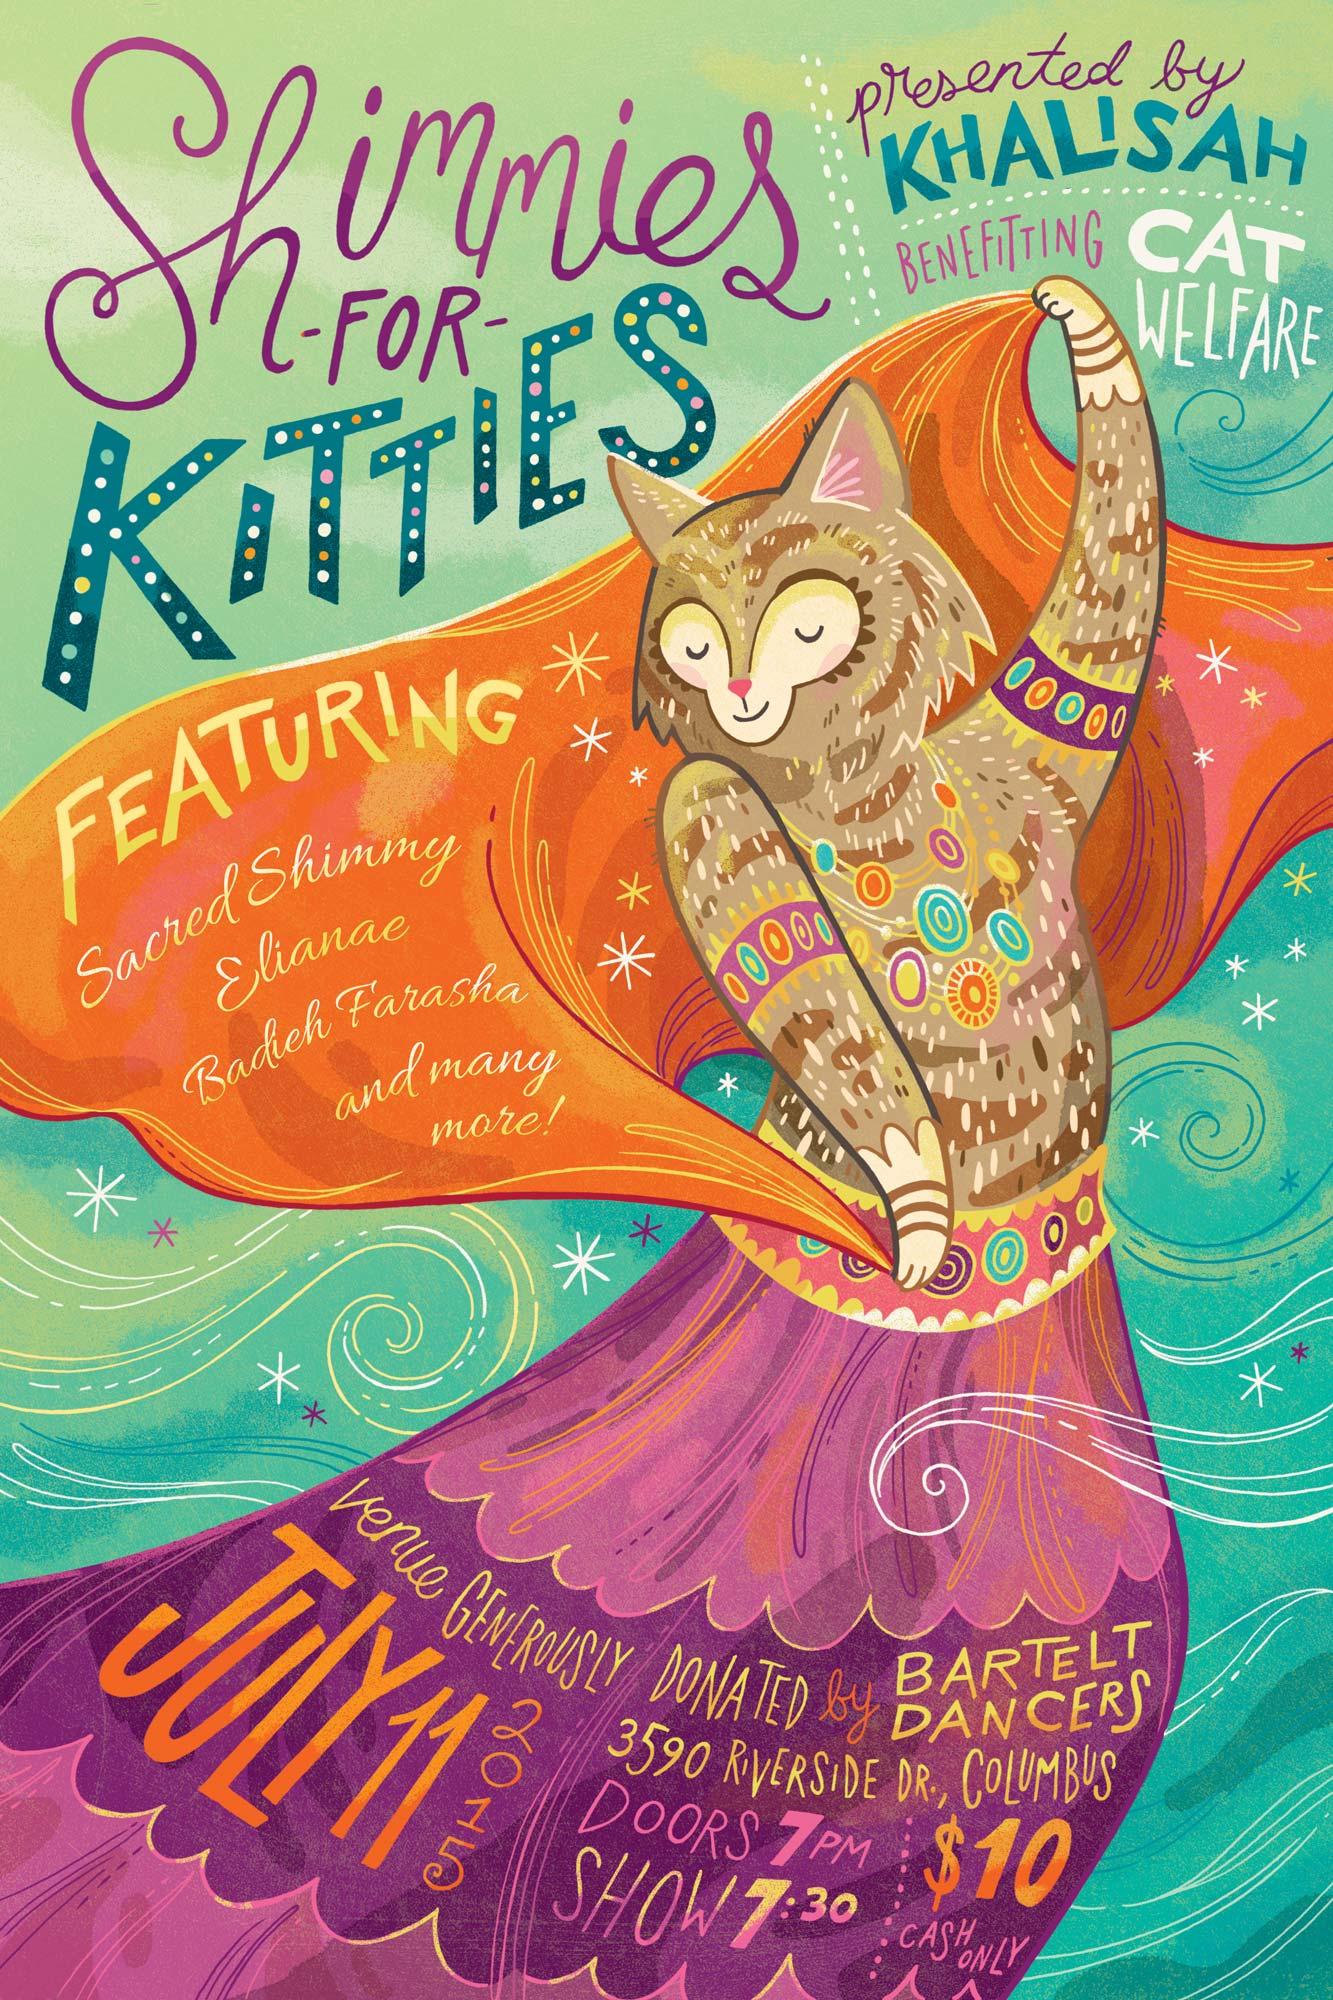 Shimmies for Kitties poster